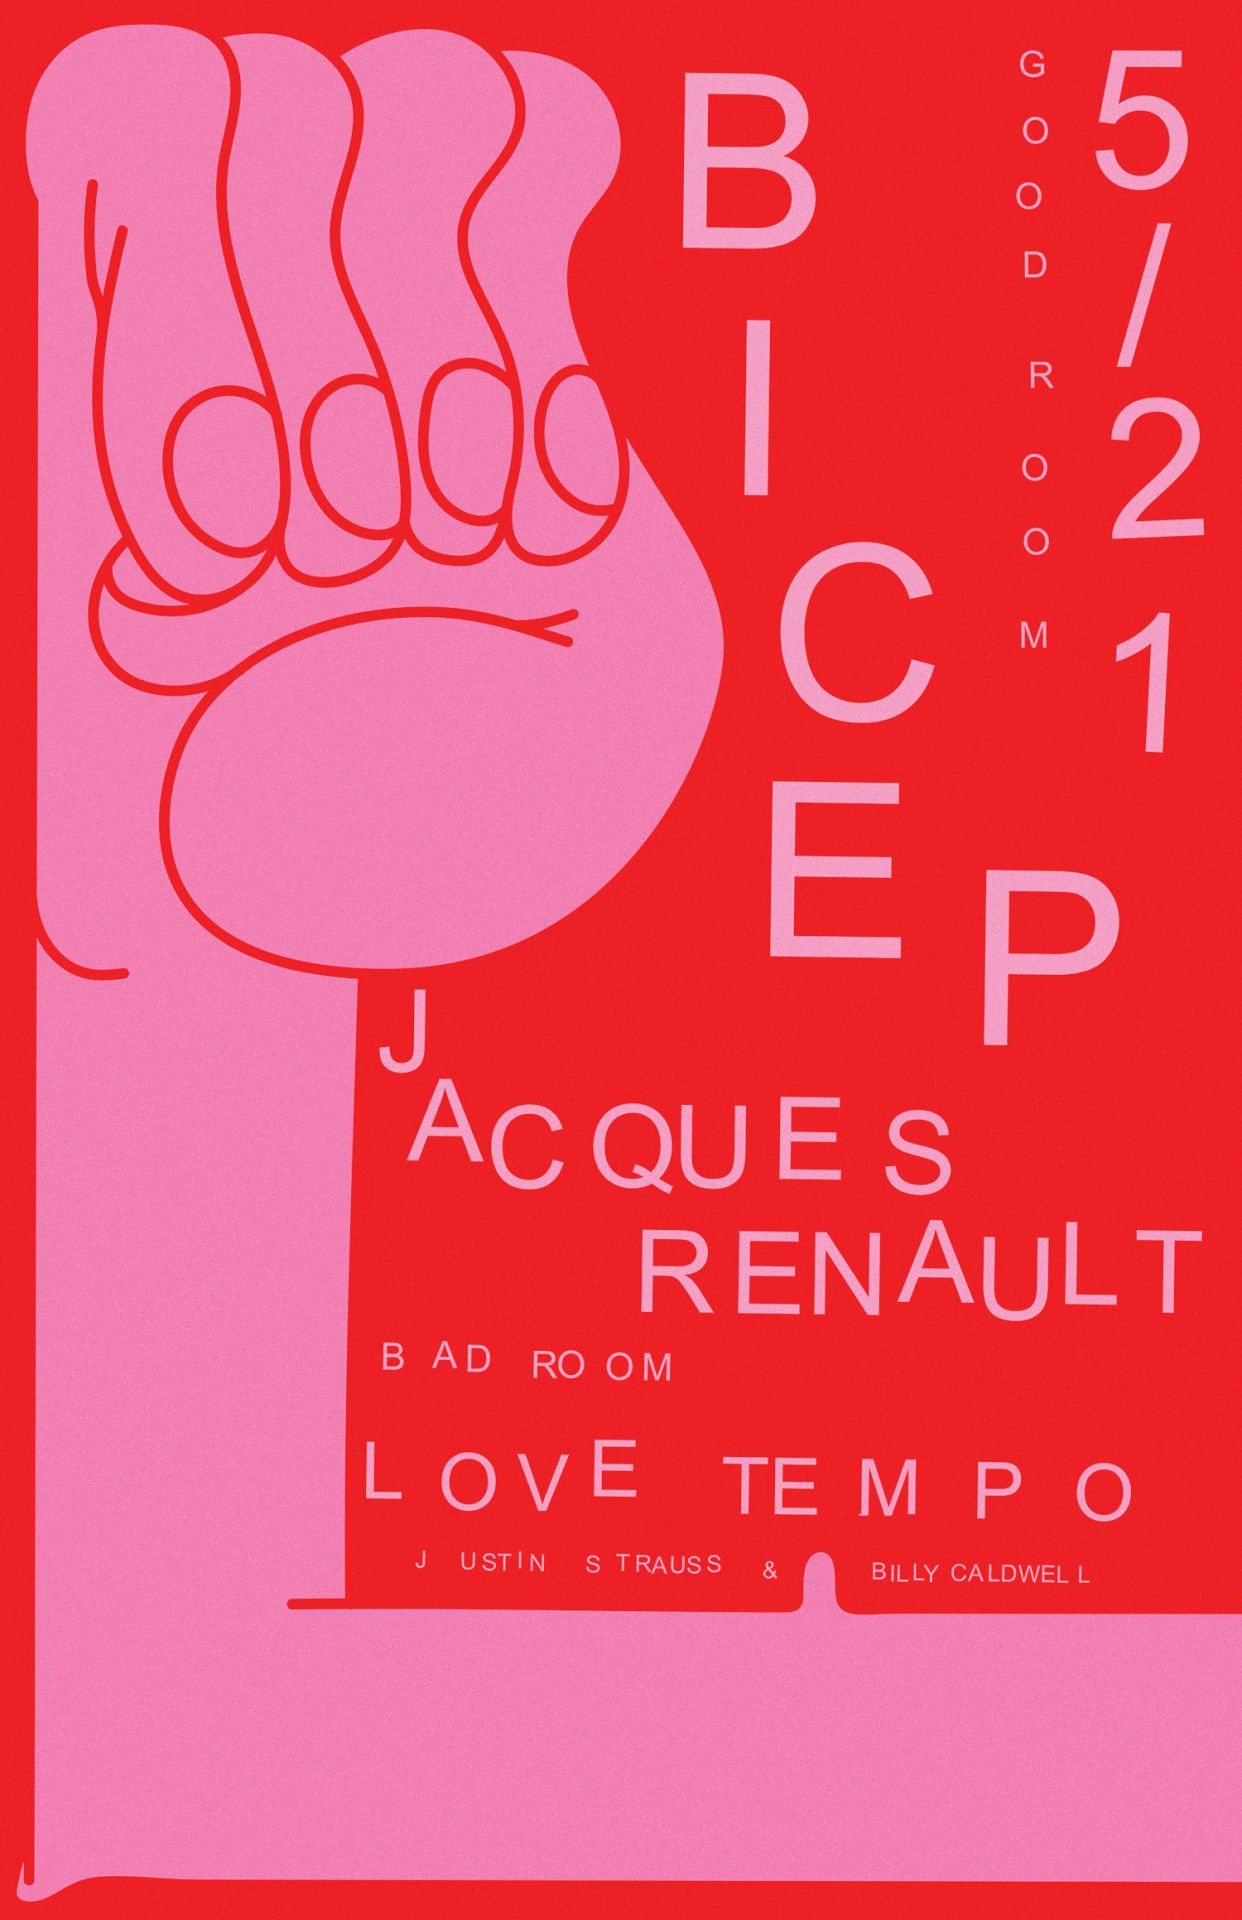 A good poster design - New Good Room Poster Braulio Amado